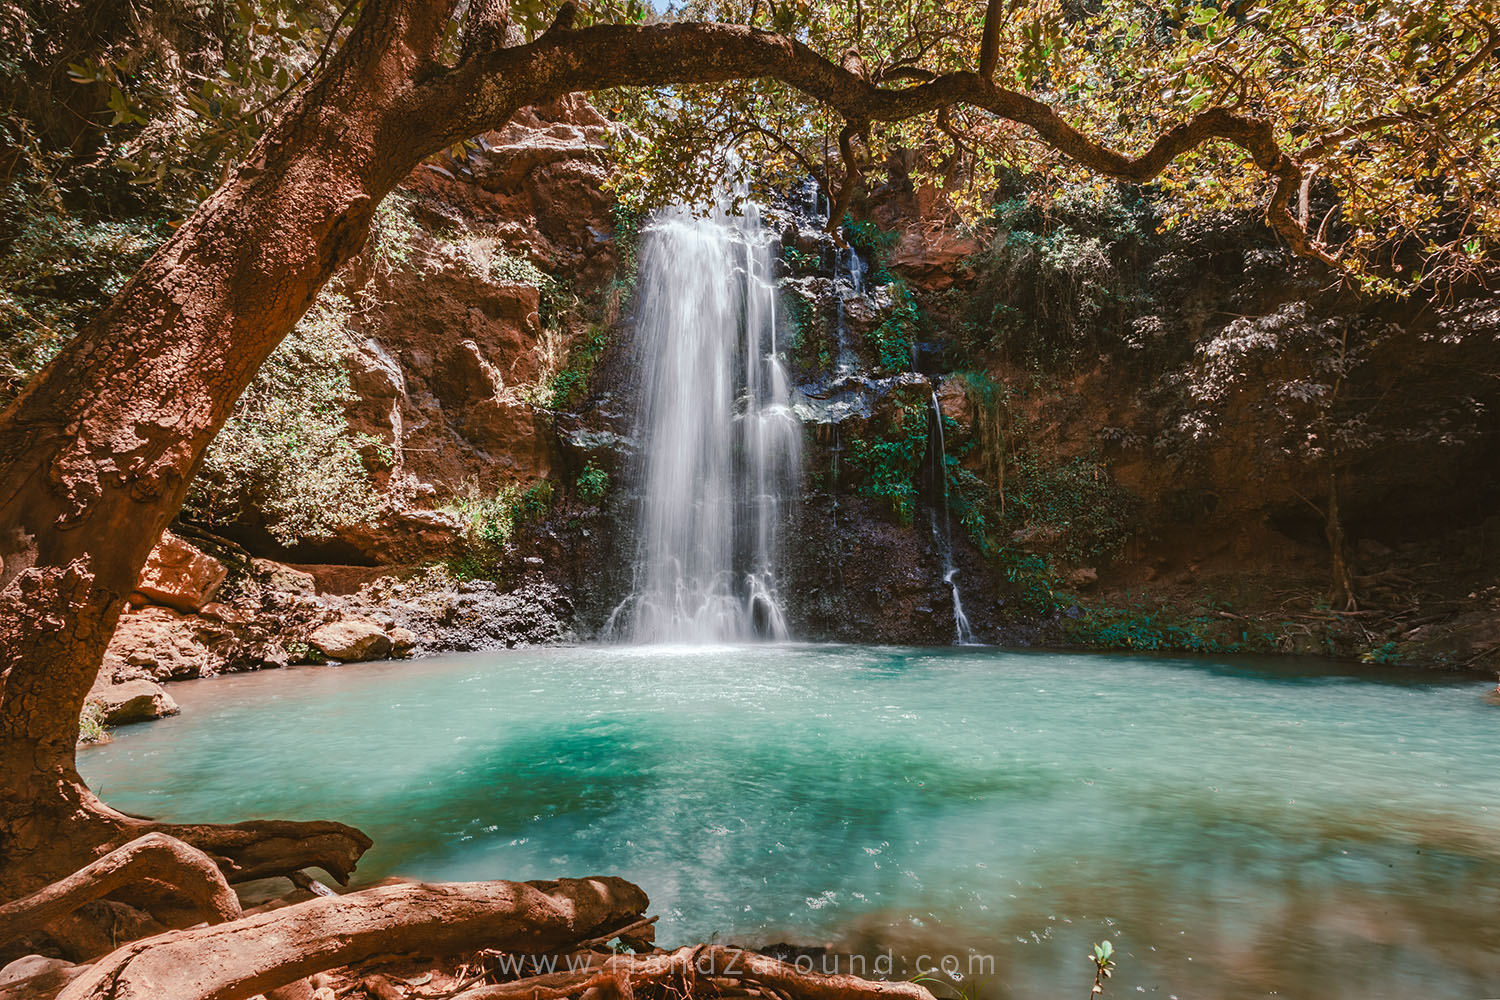 002_HANDZAROUND_NGARE_NDARE_FOREST_WATERFALL_NRT_THE_BIG_NORTH_LAIKIPIA_KENYA_AFRICA.jpg